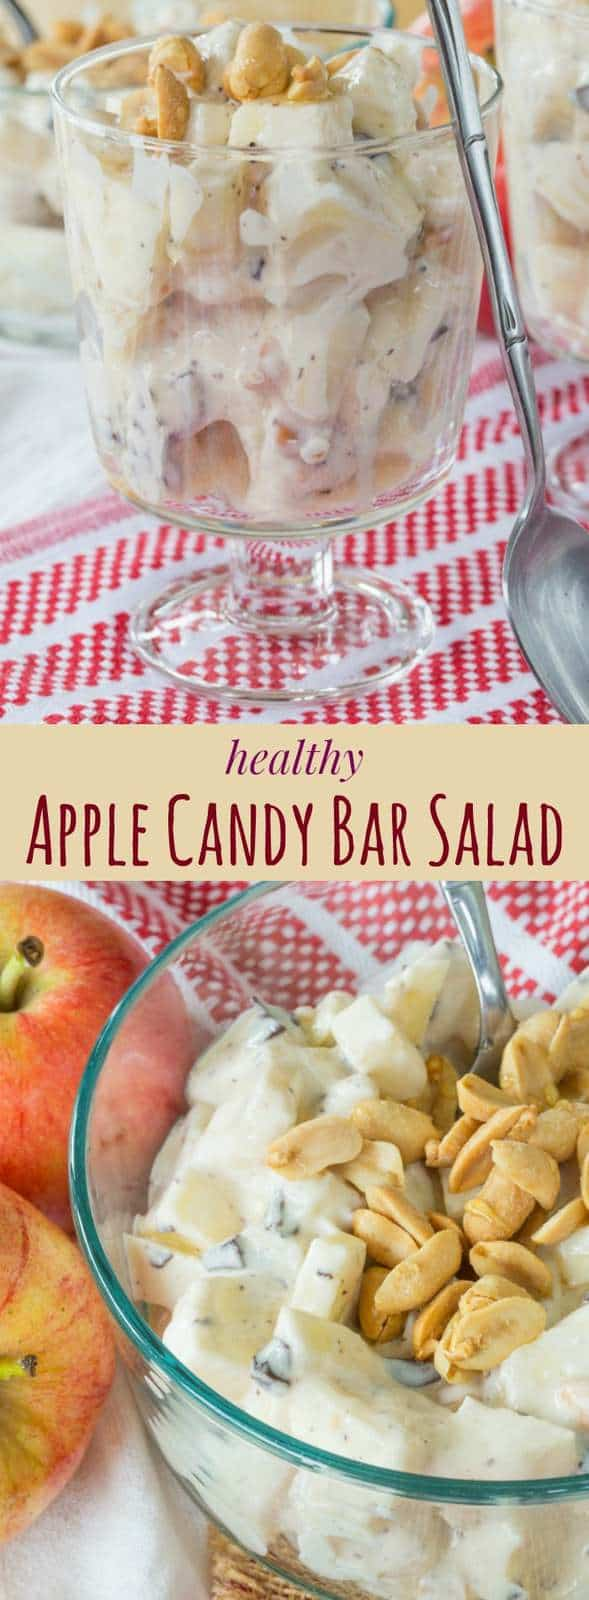 Healthy Apple Candy Bar Salad - a healthier version of Snickers salad, you'll love this fruit salad recipe for breakfast, brunch, snack, or dessert